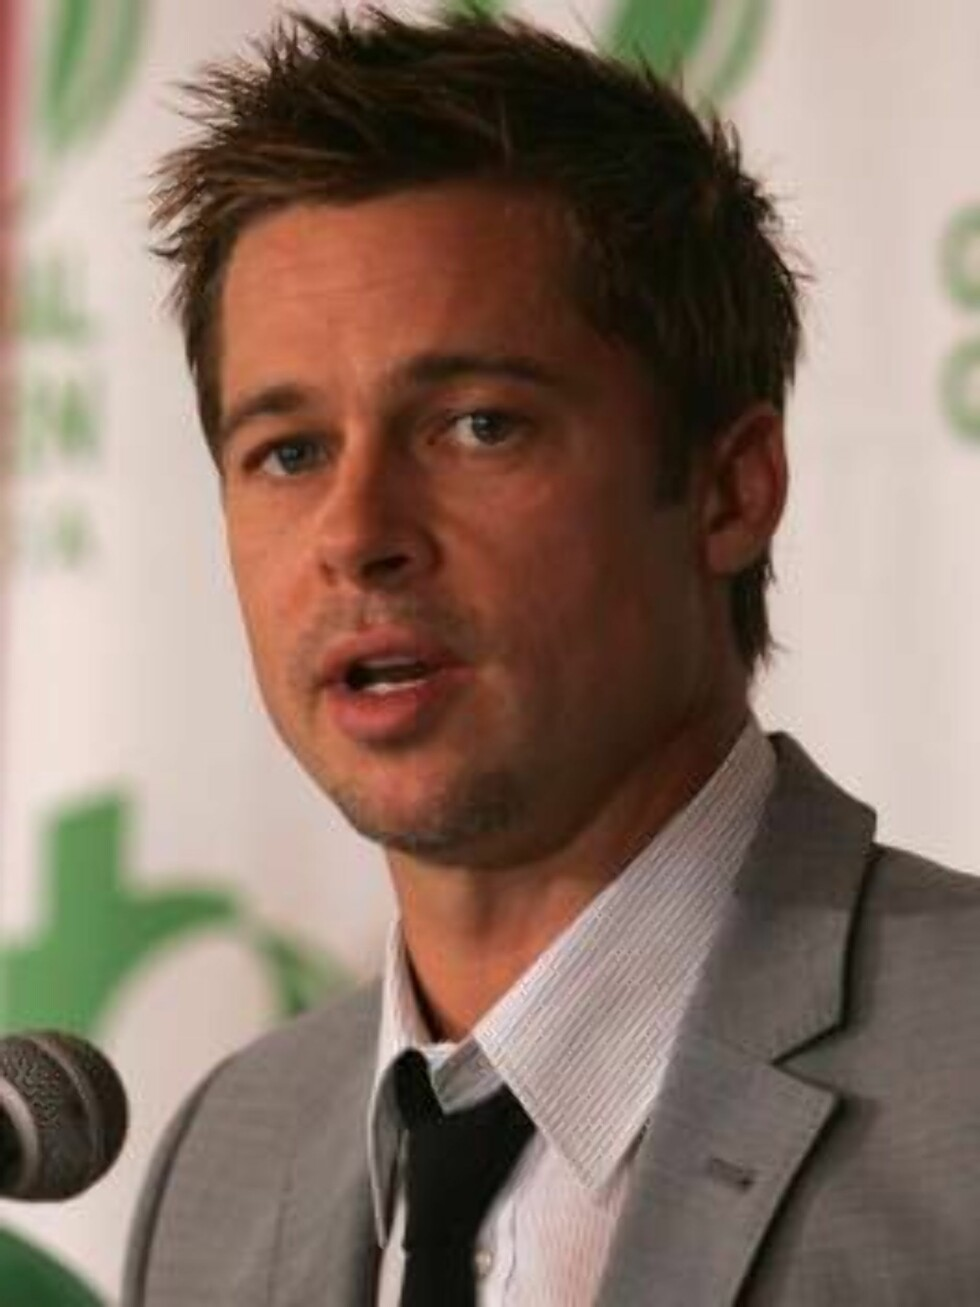 NEW ORLEANS - AUGUST 31:   Actor Brad Pitt attends a press conference announcing the eco design award winners on August 31, 2006 in New Orleans, Louisiana. Pitt and Global Green USA created a sustainable design architecture competition to showcase afforda Foto: All Over Press